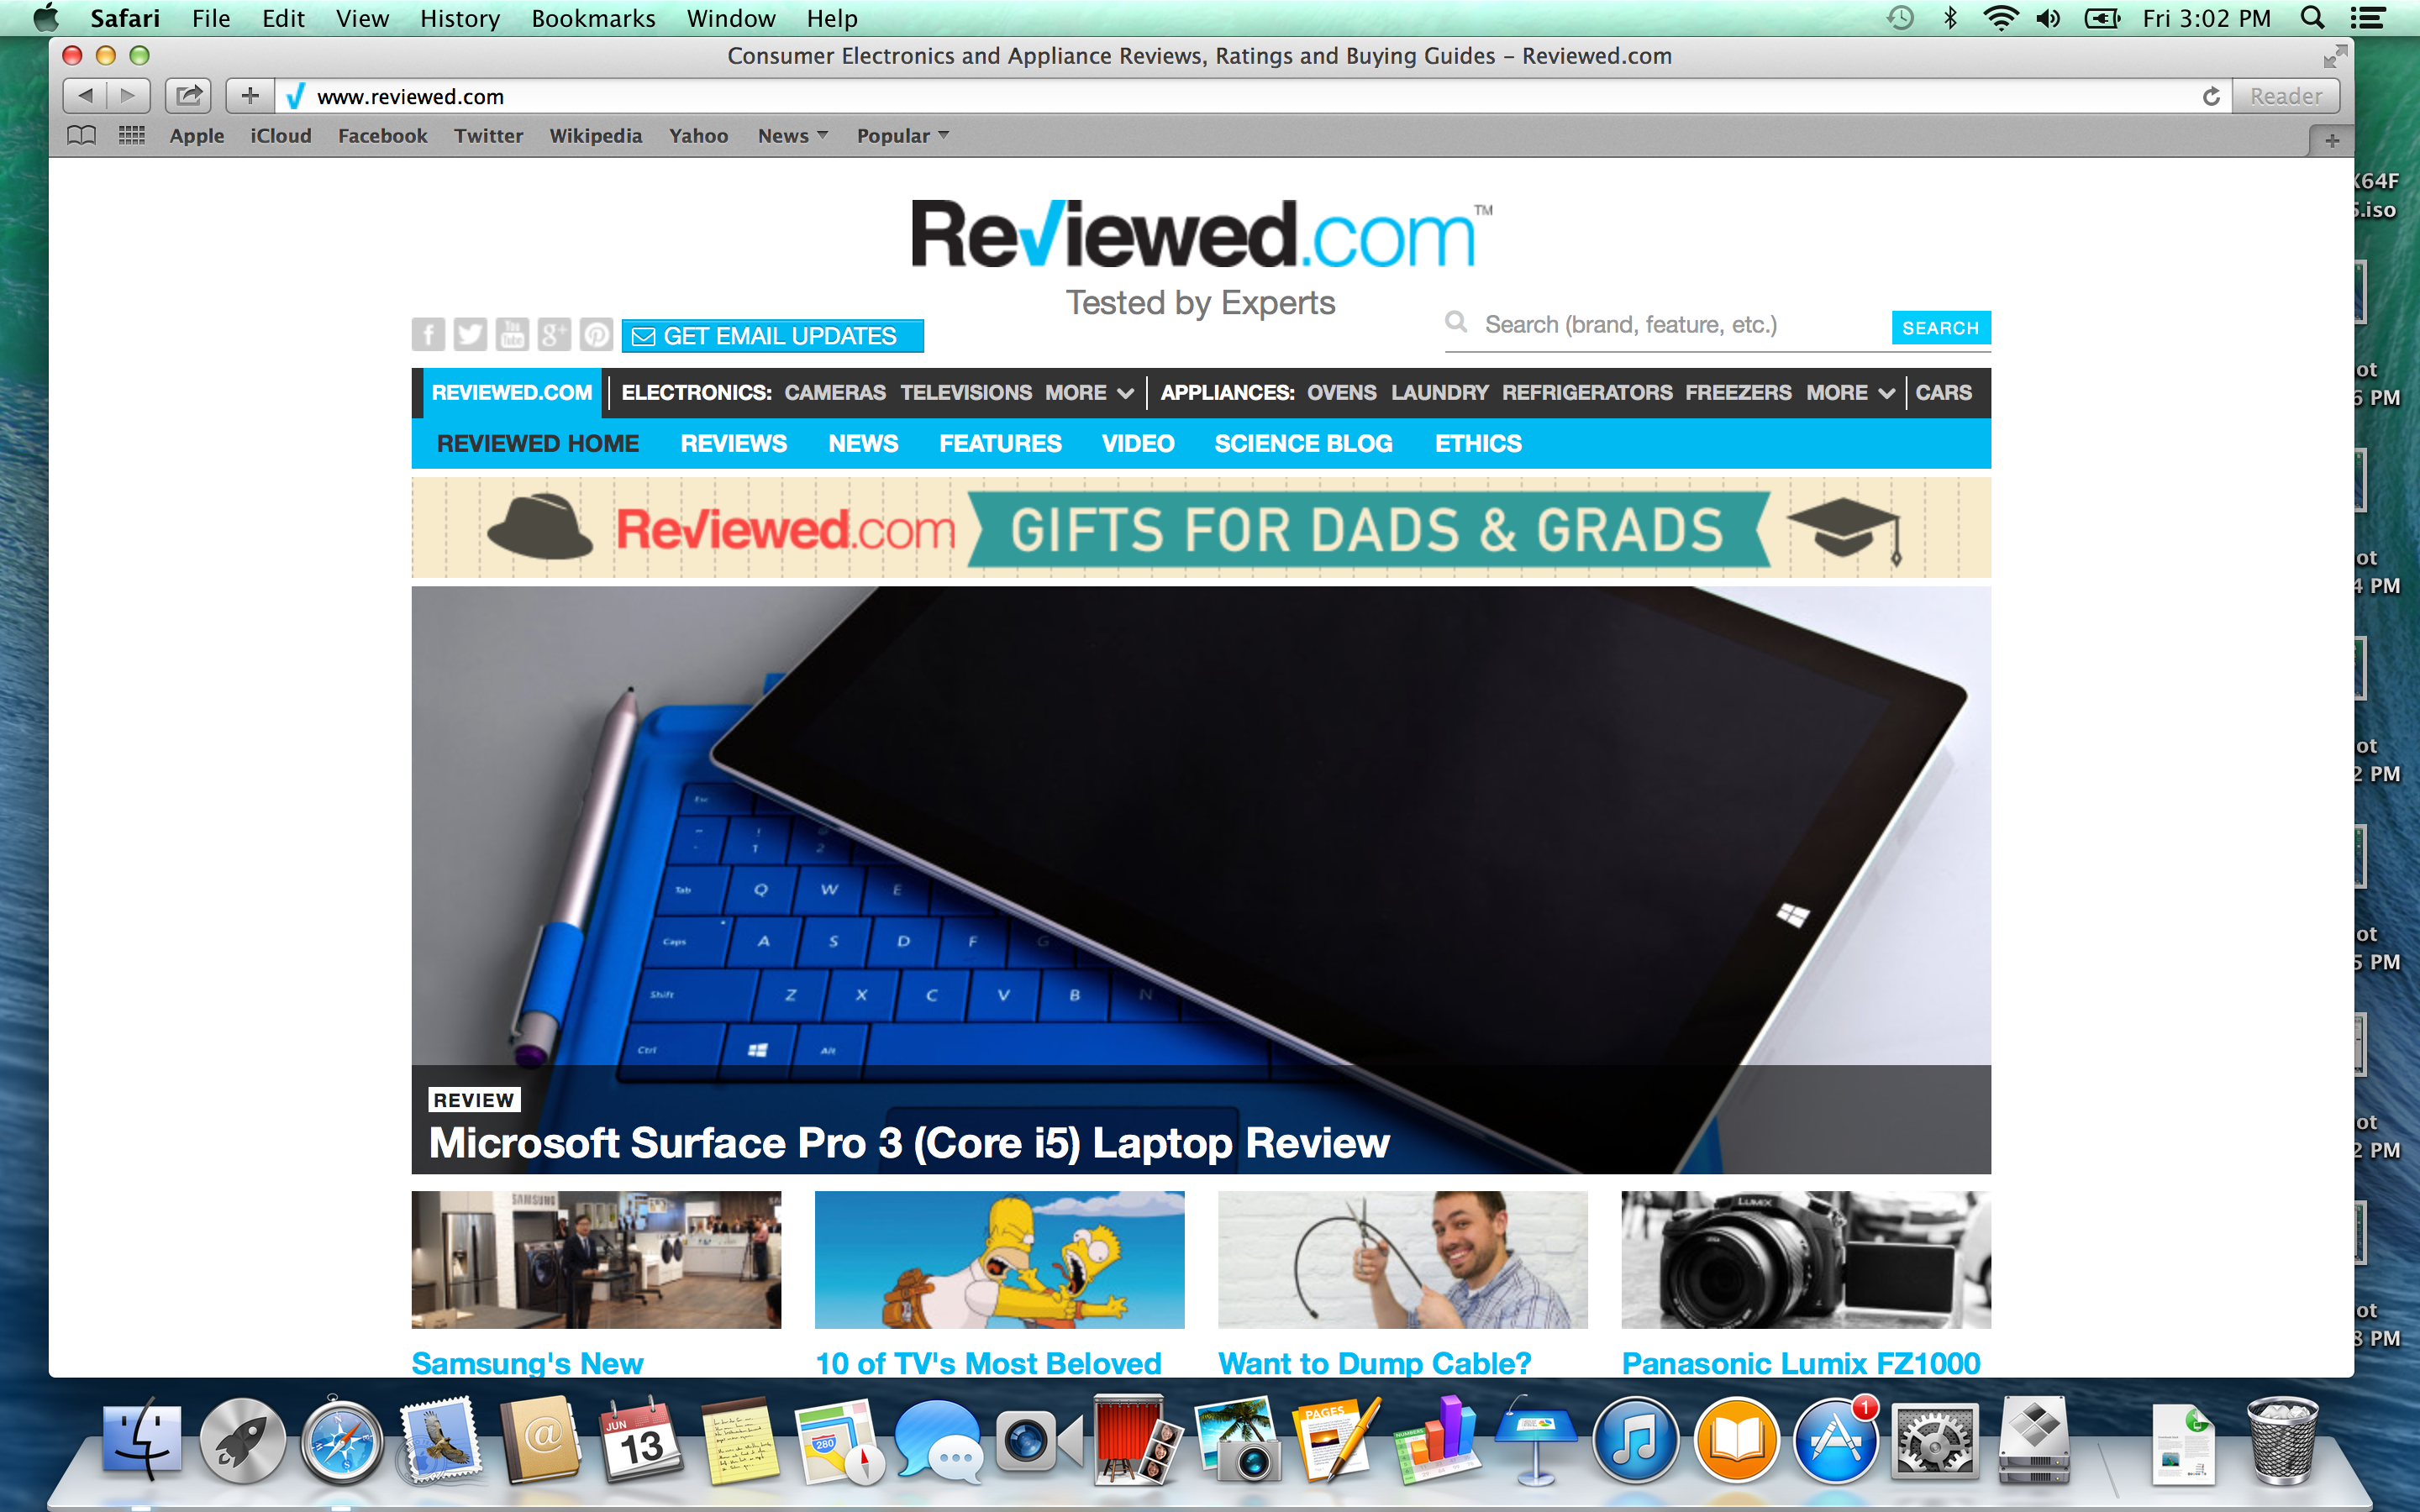 A screenshot of the Apple MacBook Pro with Retina Display's Safari web browser.